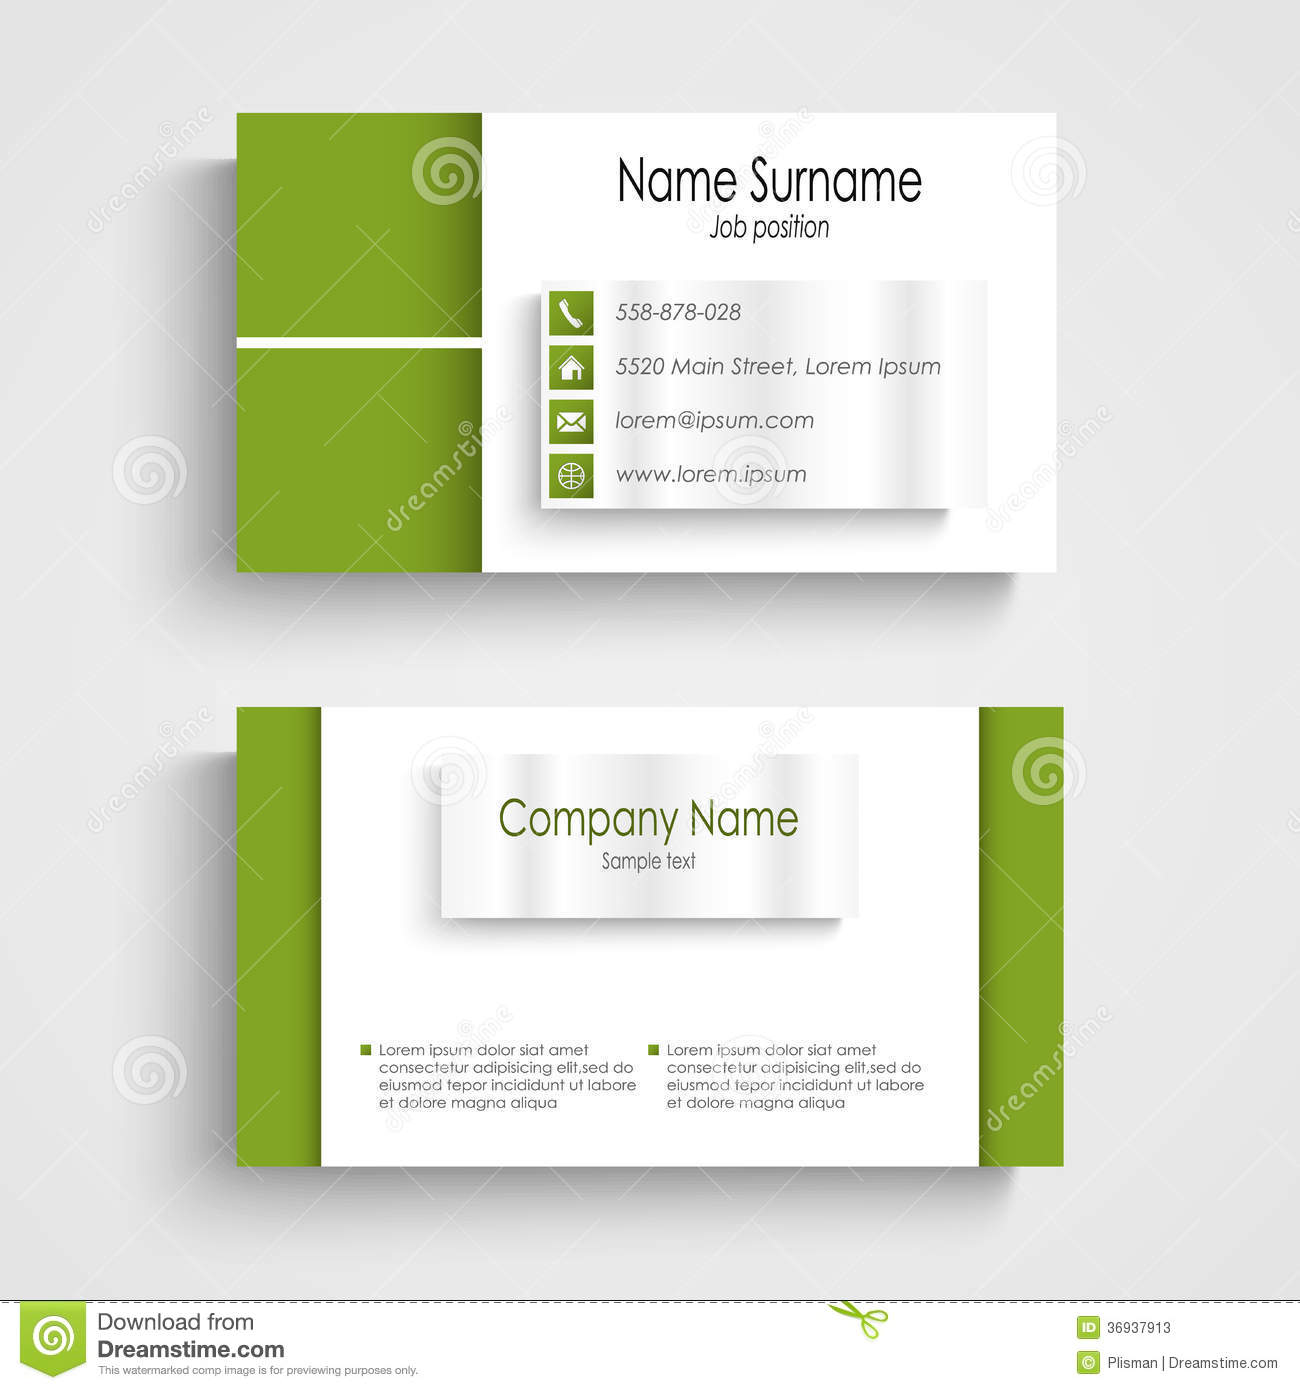 Modern green light business card template stock vector modern green light business card template wajeb Gallery